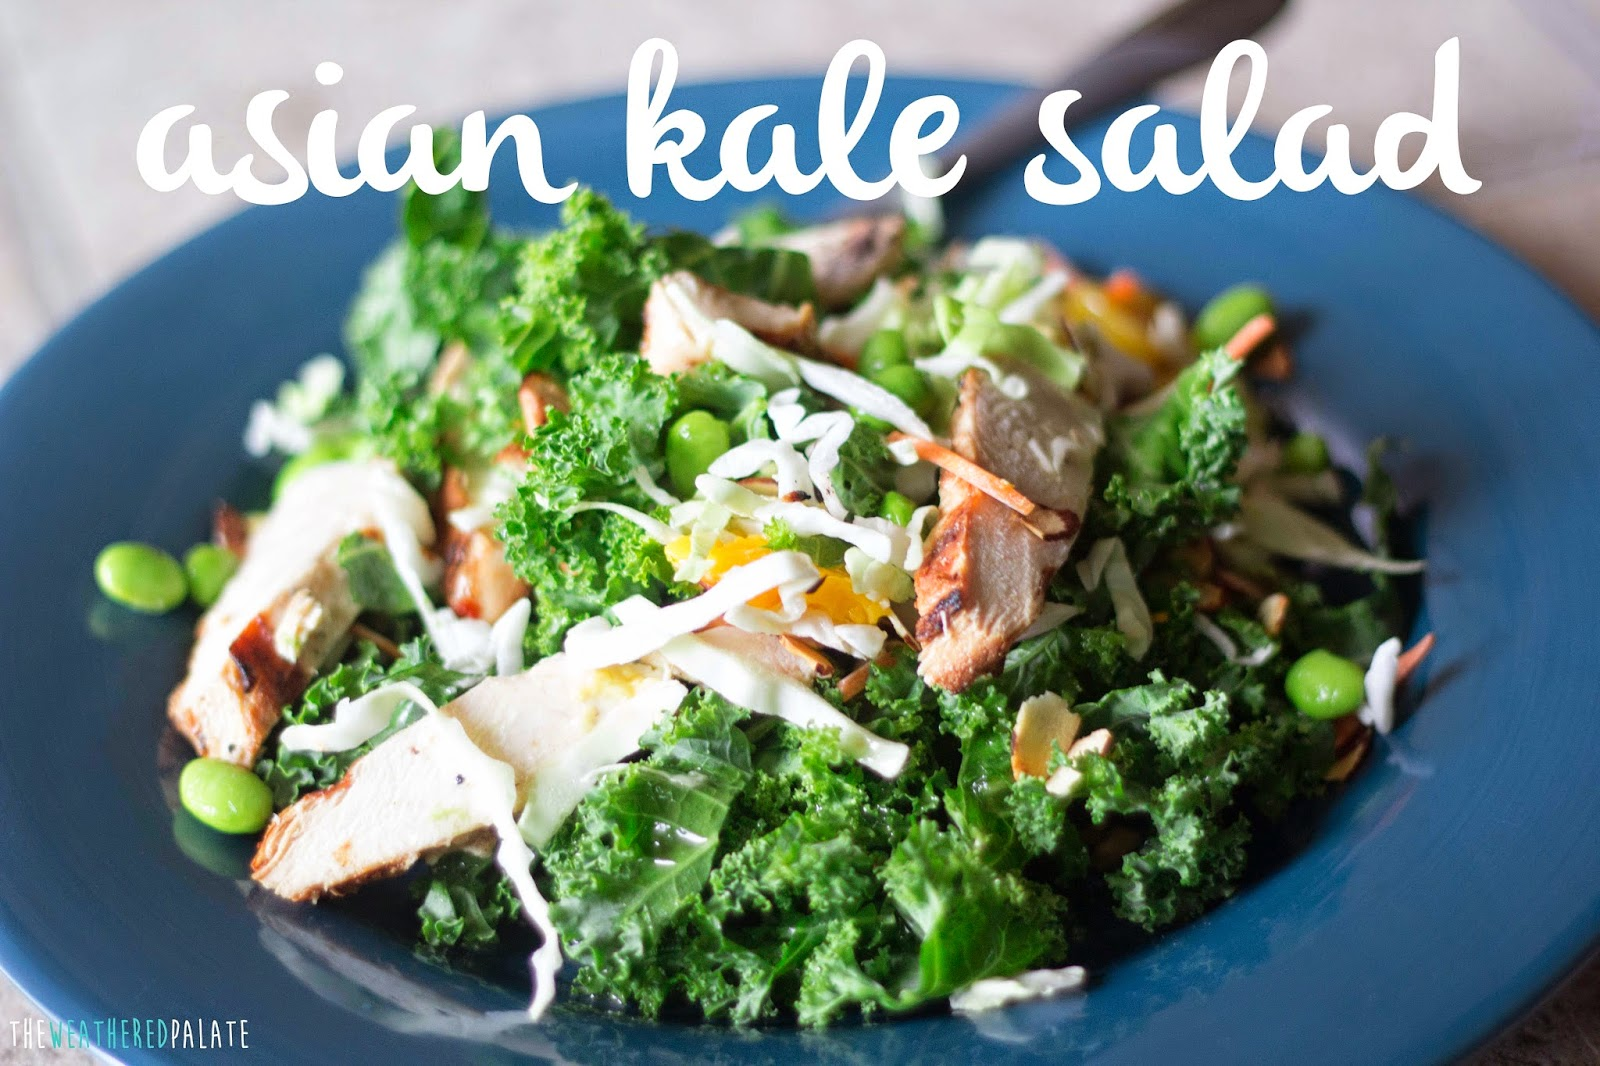 http://www.theweatheredpalate.com/2014/09/asian-kale-salad.html